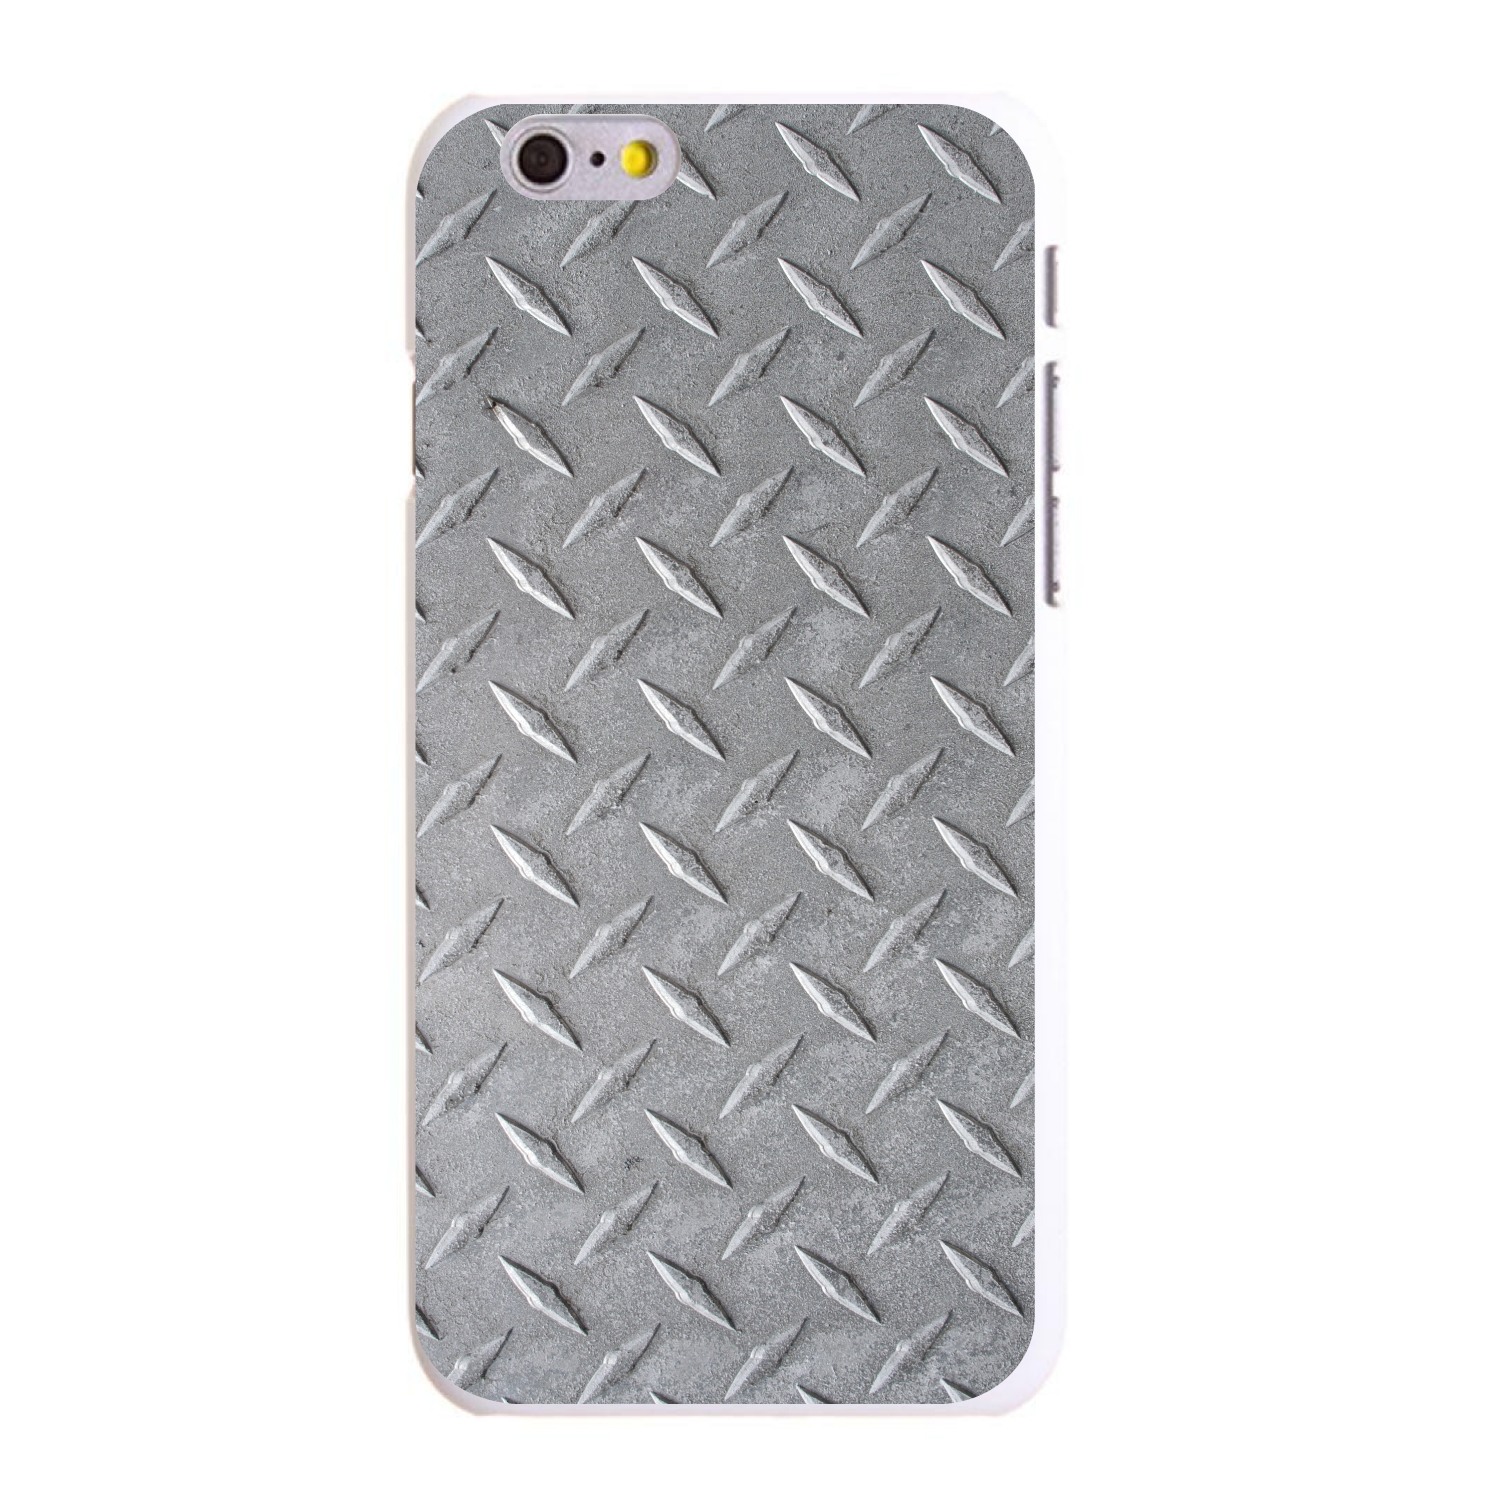 "CUSTOM White Hard Plastic Snap-On Case for Apple iPhone 6 PLUS / 6S PLUS (5.5"" Screen) - Grey Diamond Plate Steel"